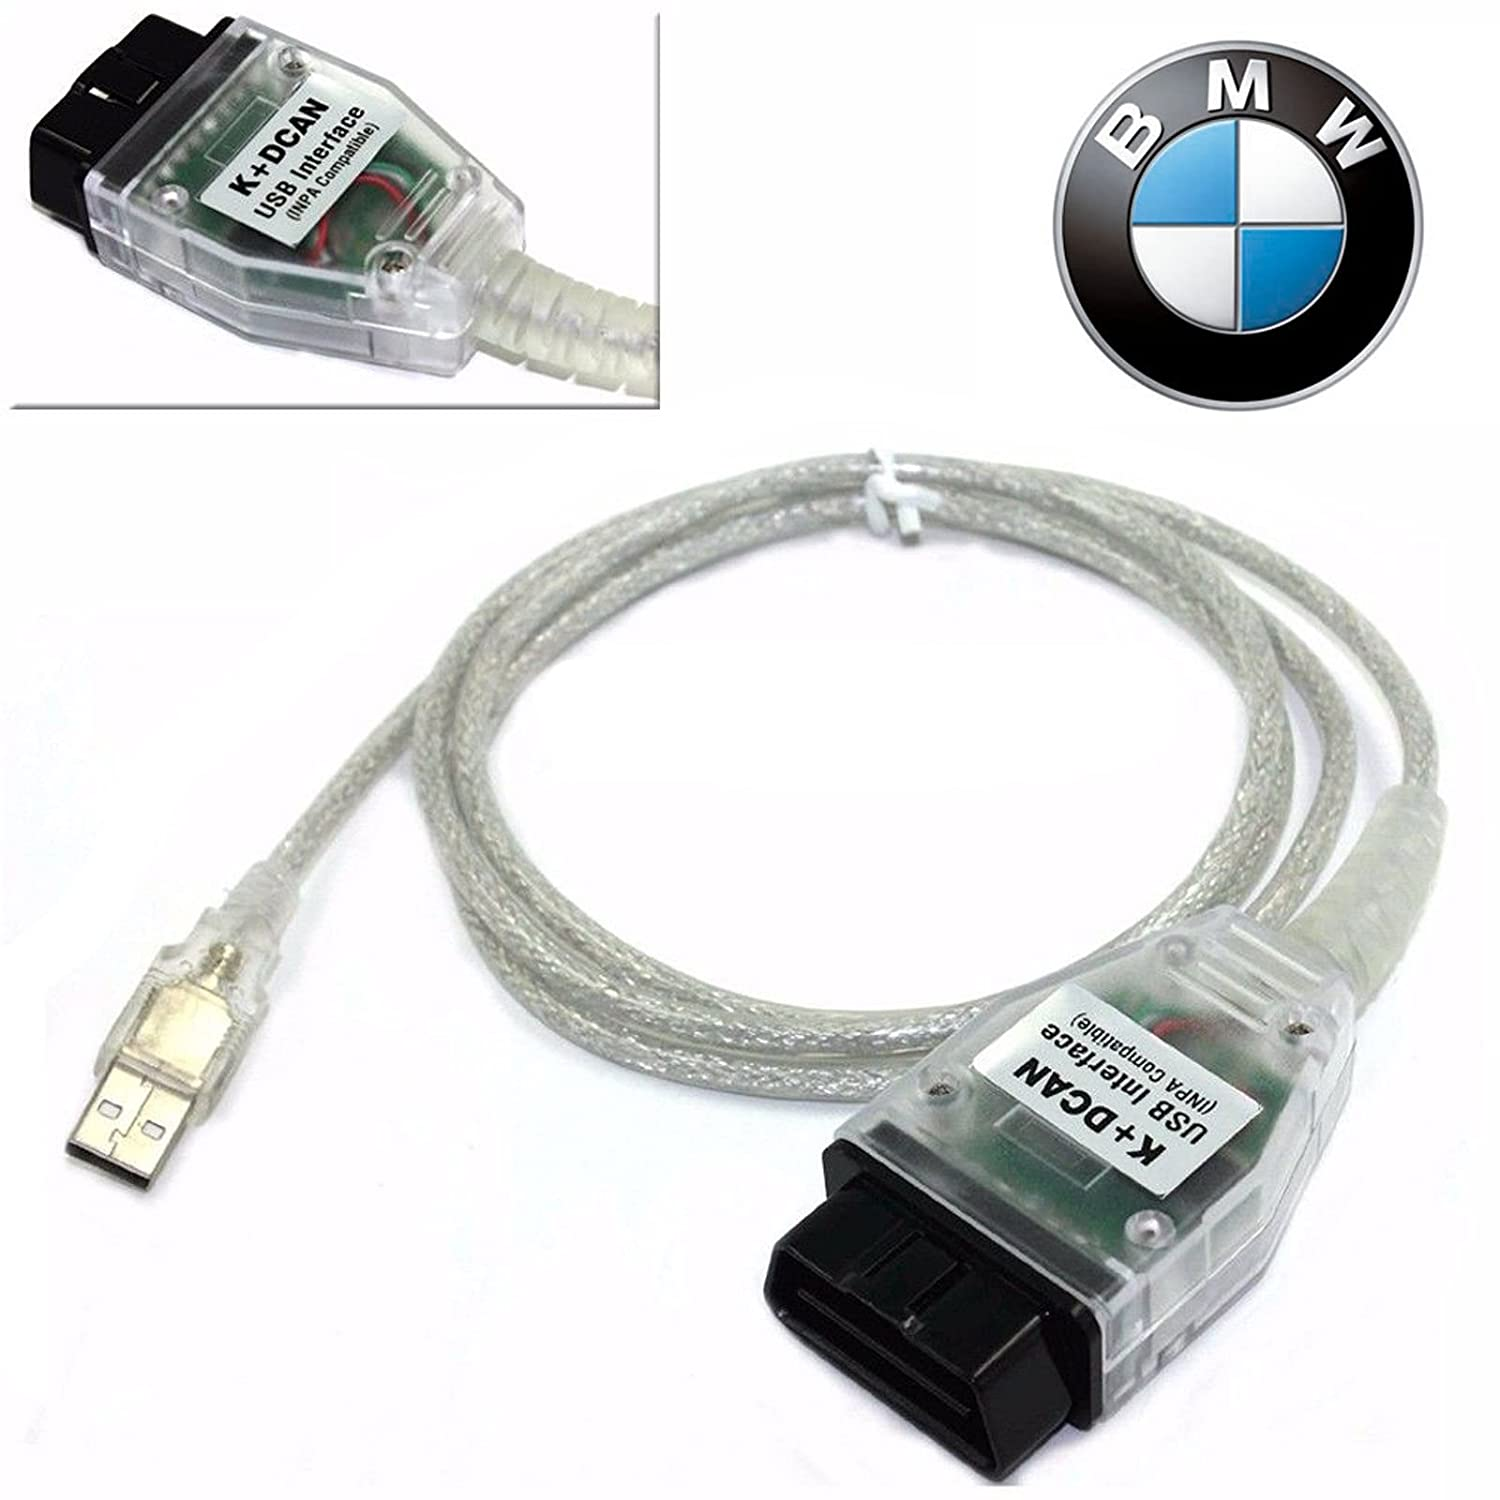 BMW K+DCAN Cable for E series